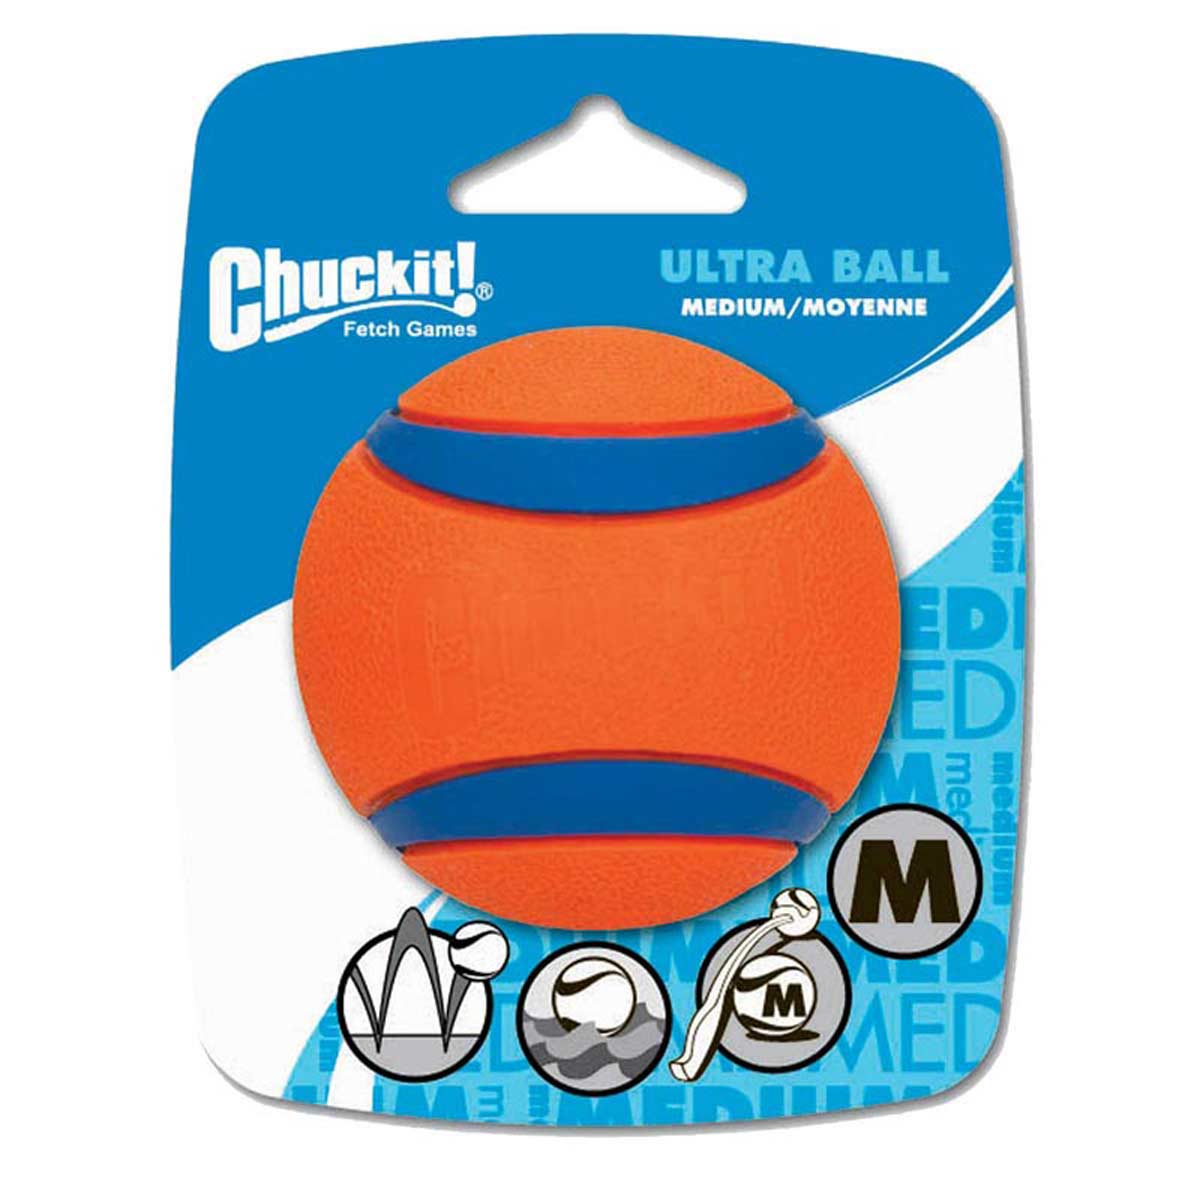 Chuckit! Ultra Ball Medium in the packaging